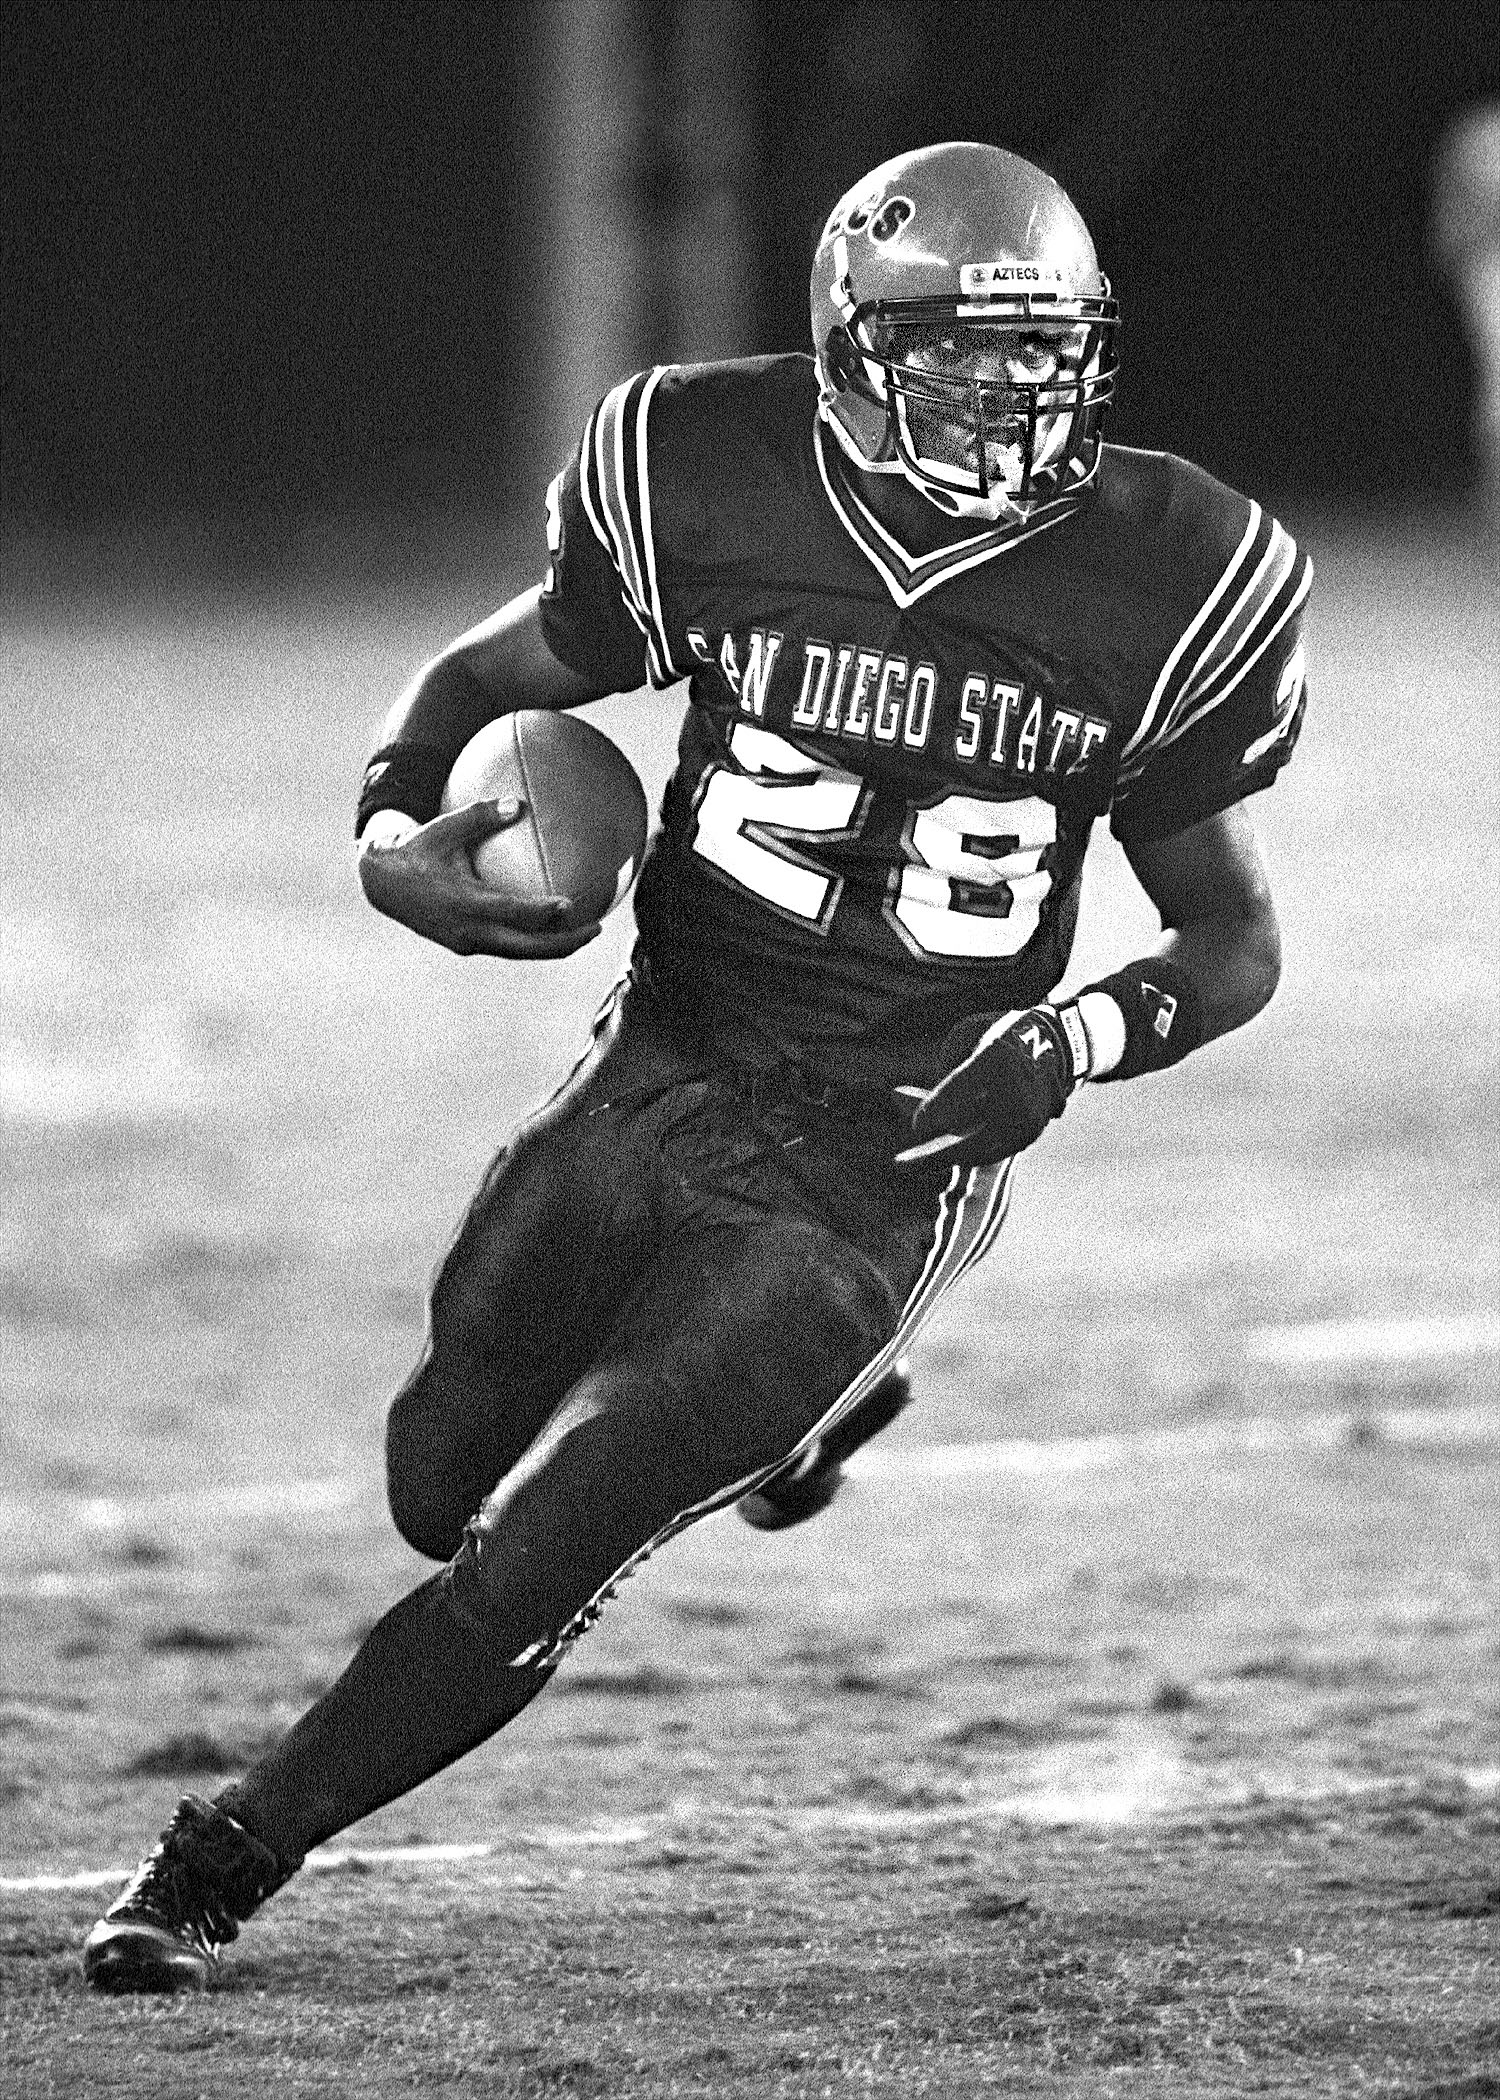 Marshall Faulk set records at SDSU before his NFL Hall of Fame career.